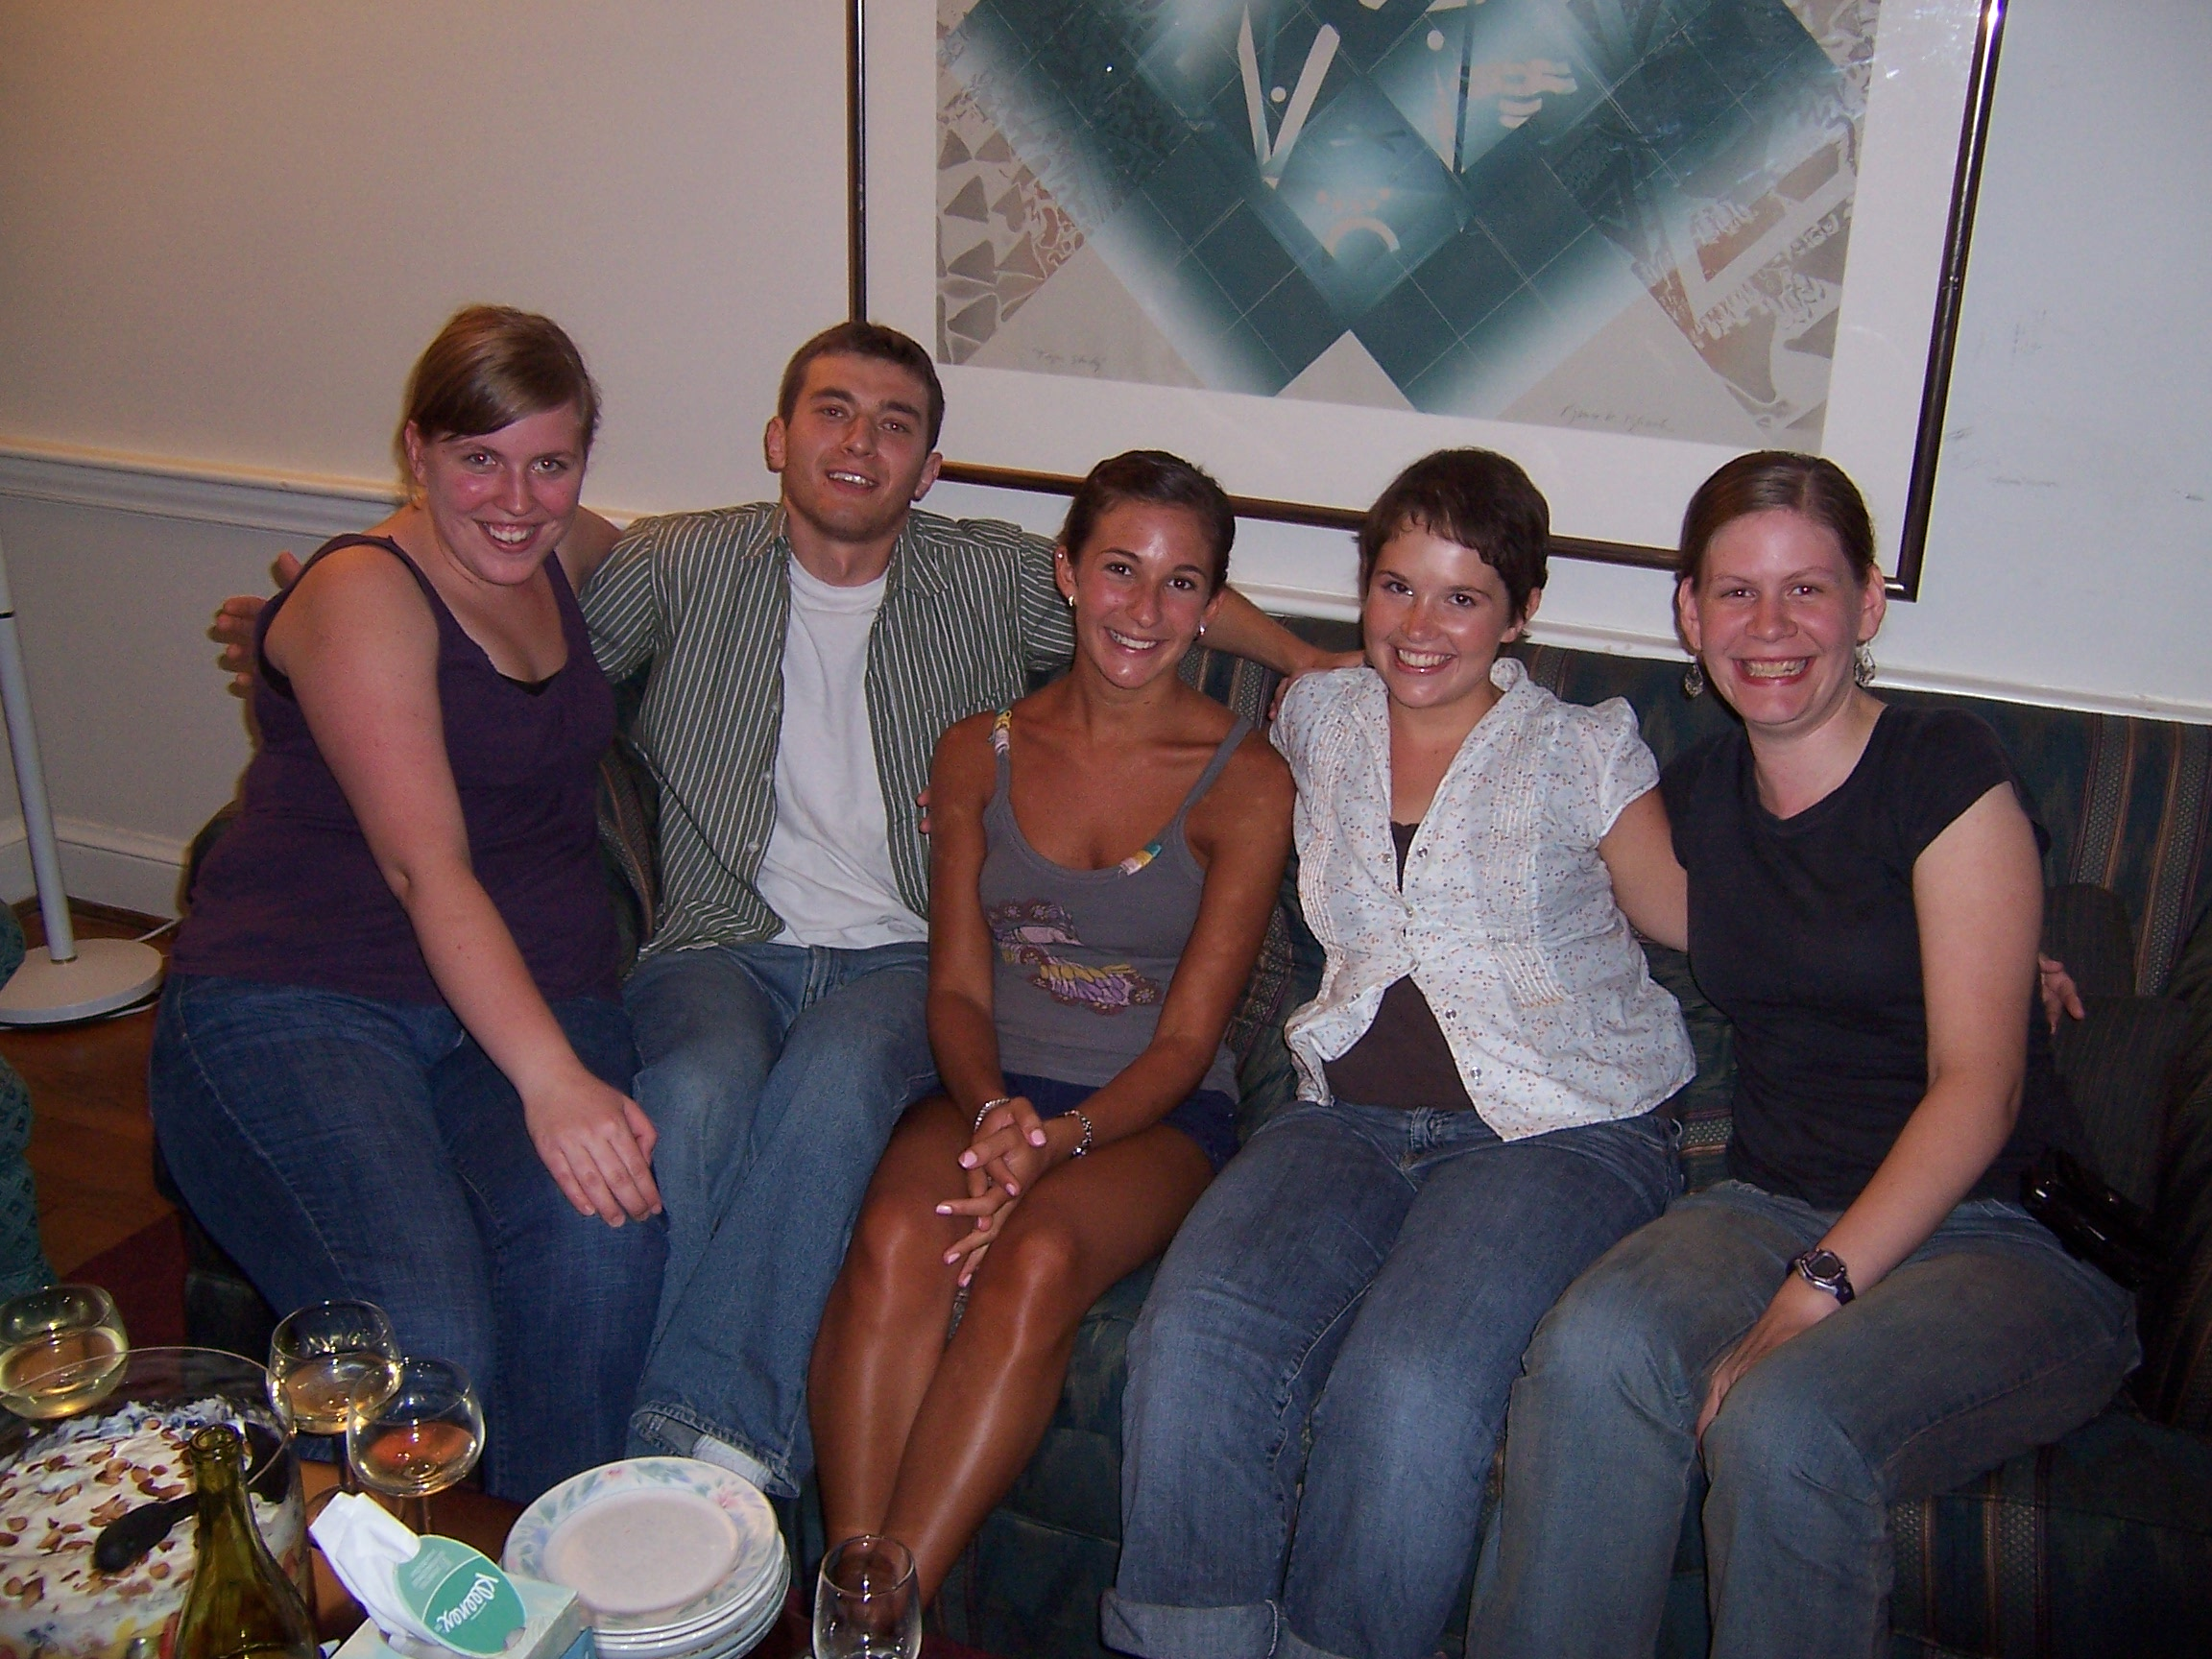 2008-2009 Volunteers Left to right: Charlotte Emigh, Noah Bein, Jennifer Cacace, Deanna Drake, and Rachel Birkhahn-Rommelfanger